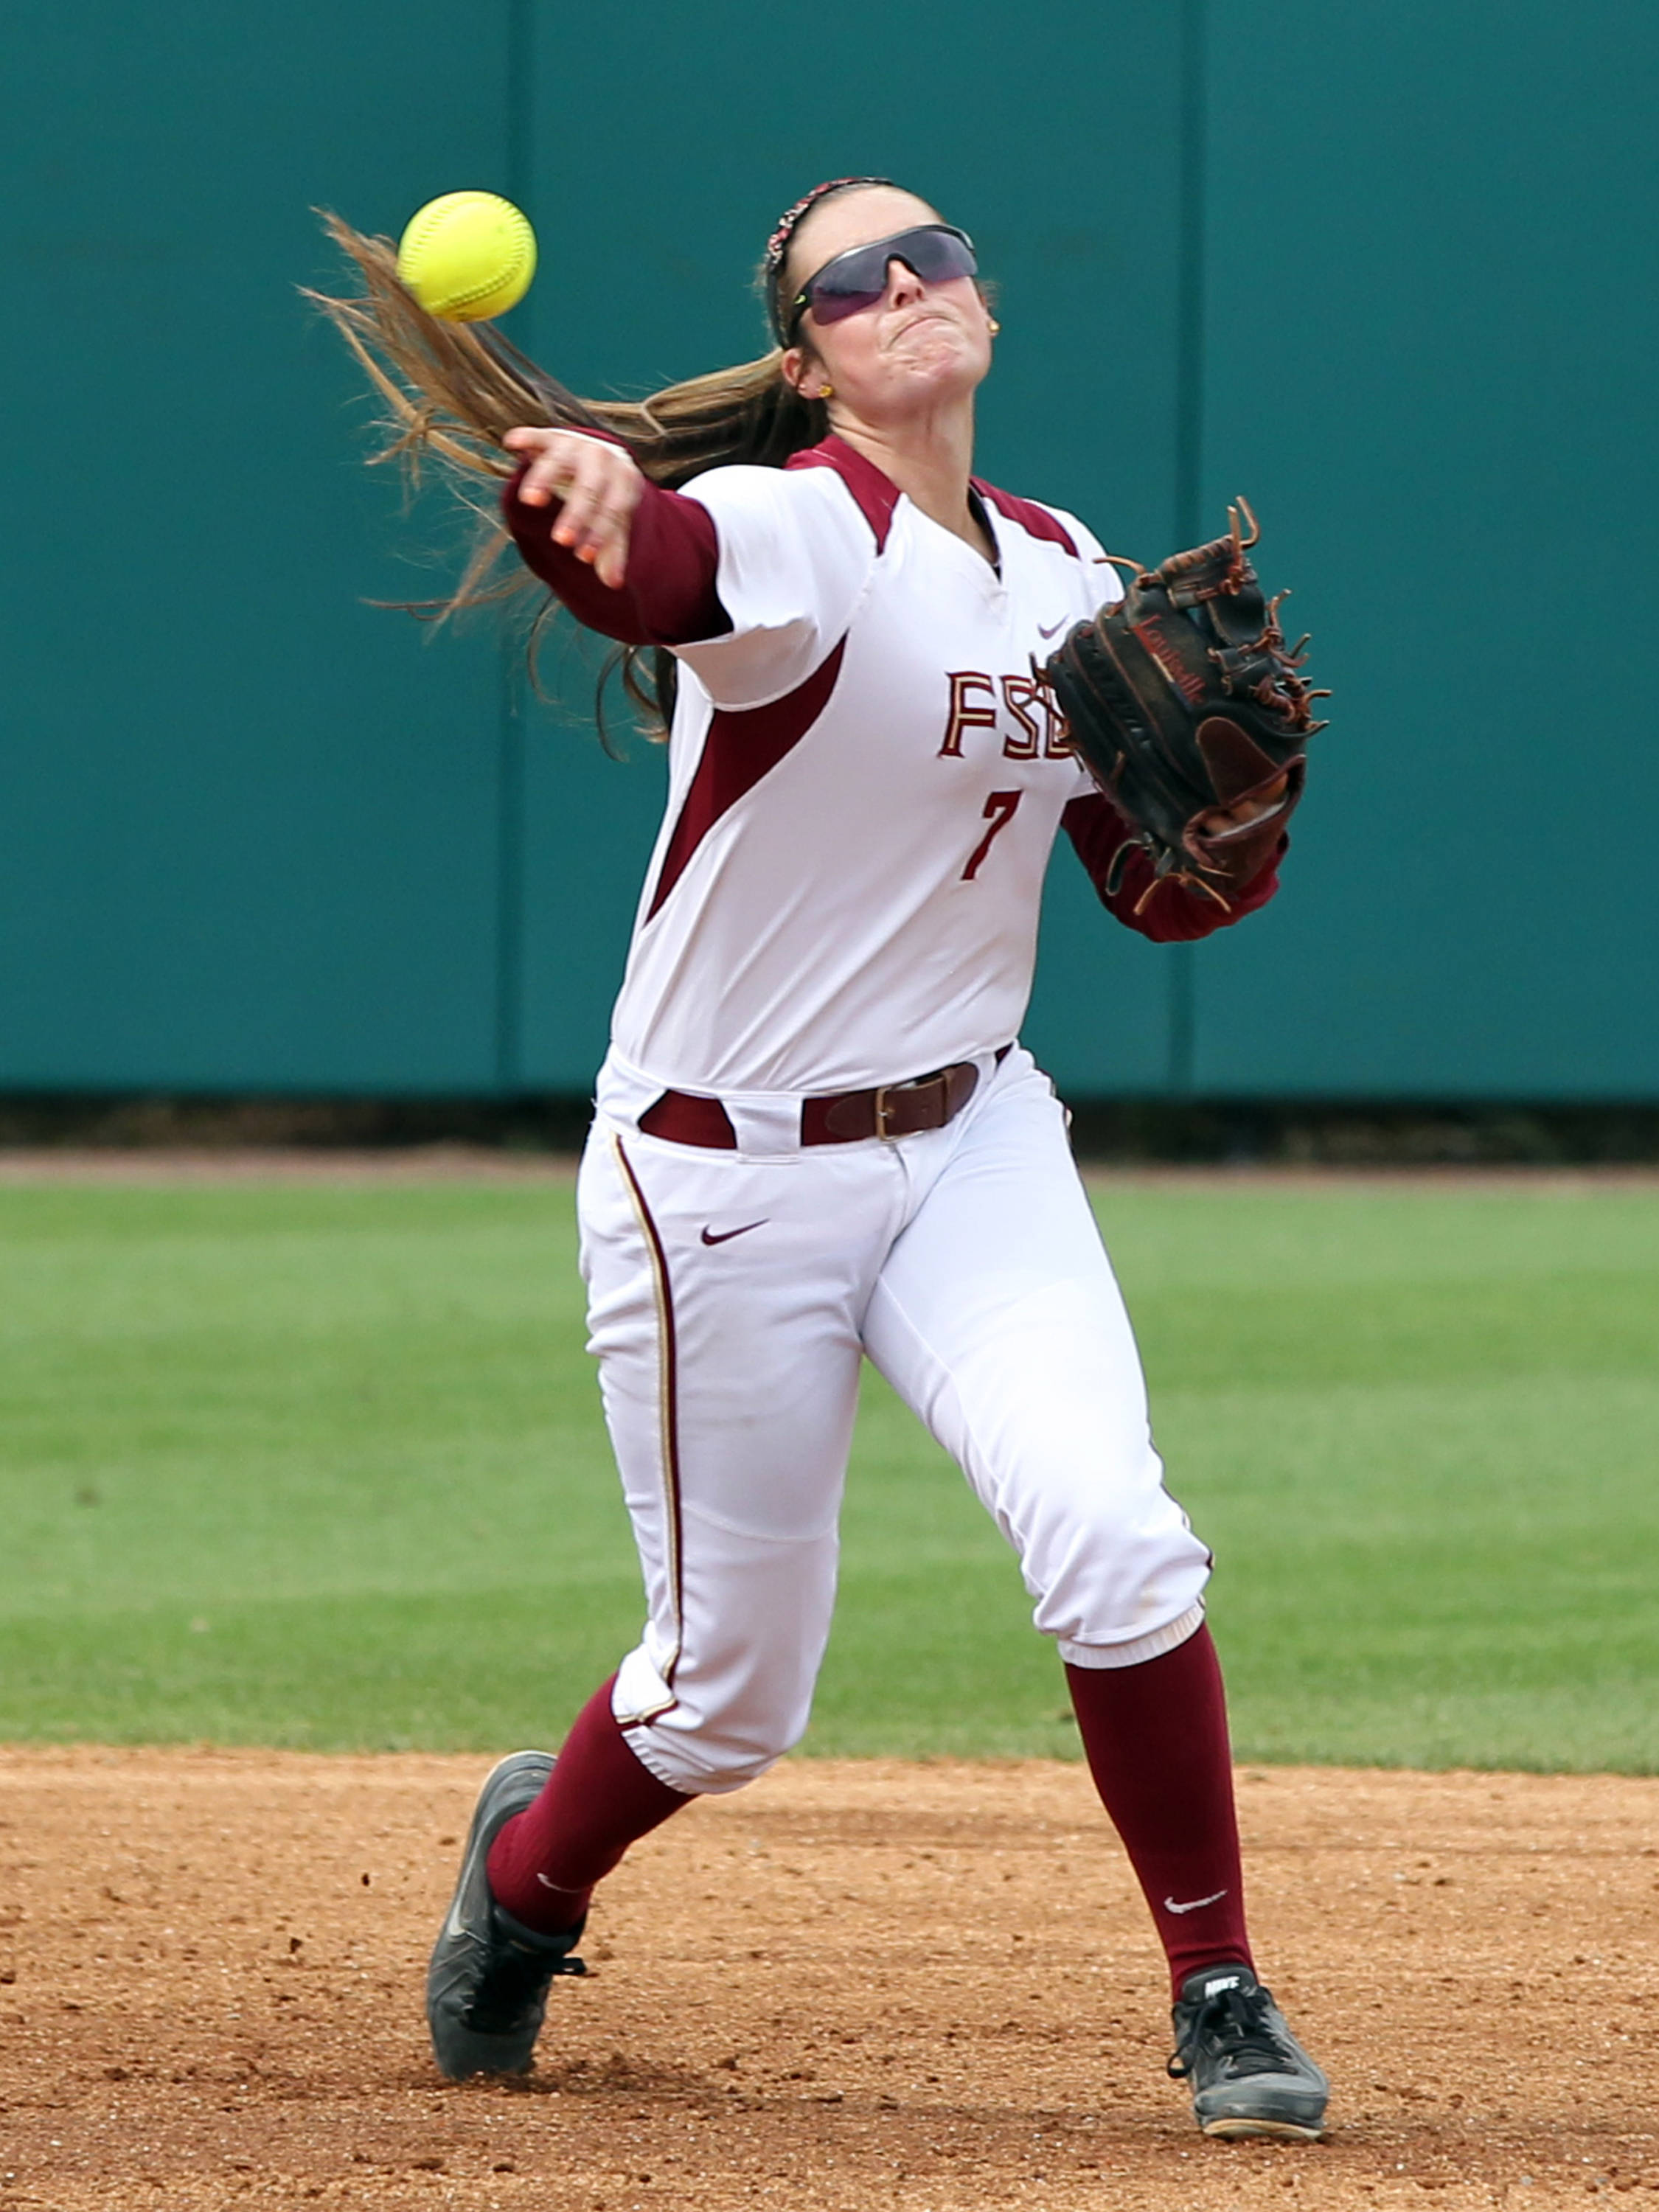 Maddie O'Brien, FSU VS NC, ACC Championship Semifinals, Tallahassee, FL,  05/10/13 . (Photo by Steve Musco)